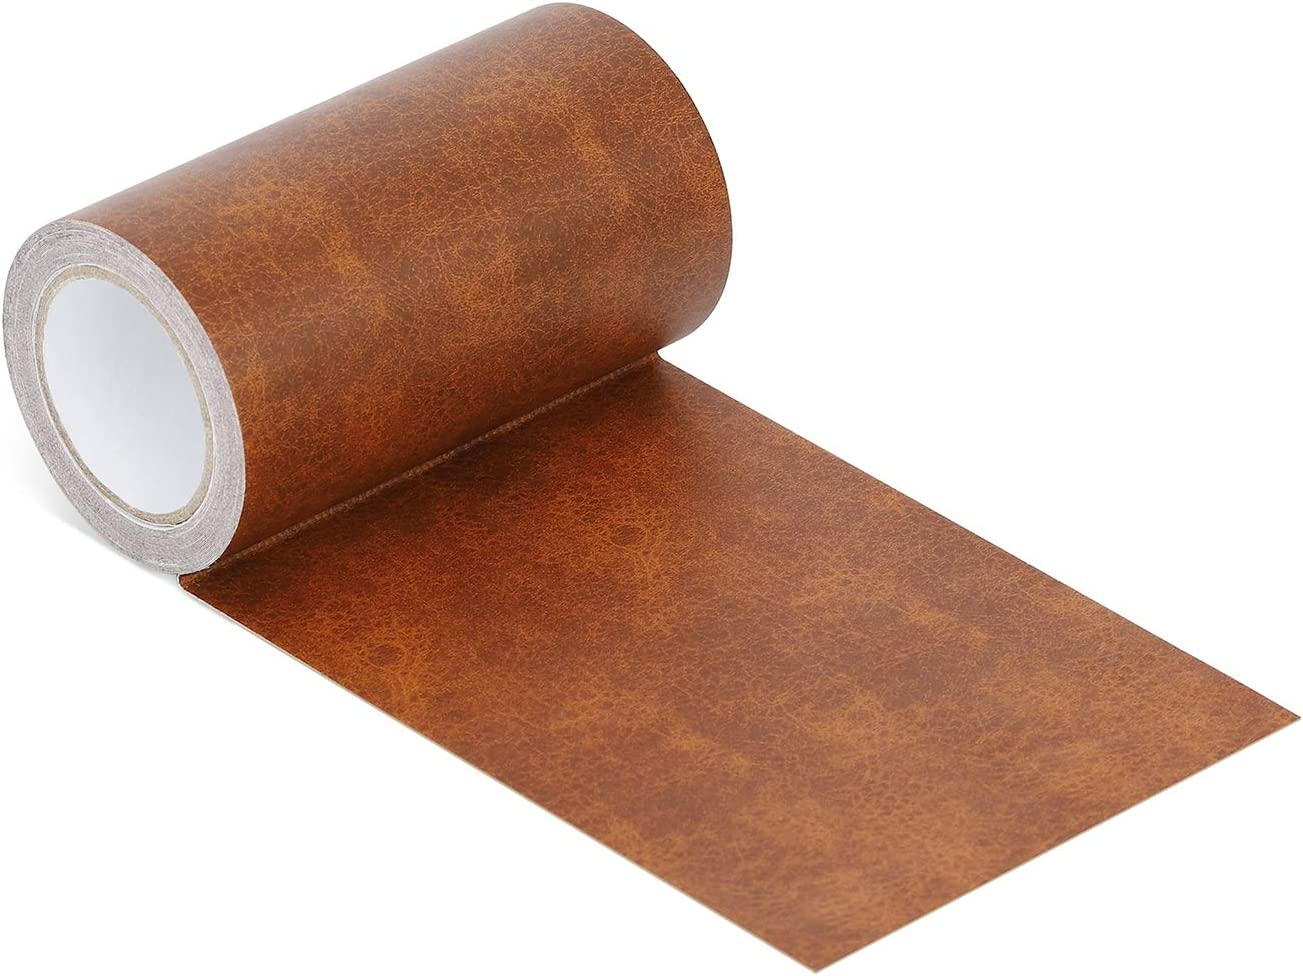 Azobur Leather Repair Tape Patch Leather Adhesive for Sofas, Car Seats, Handbags, Jackets,First Aid Patch (Whiskey Leather)